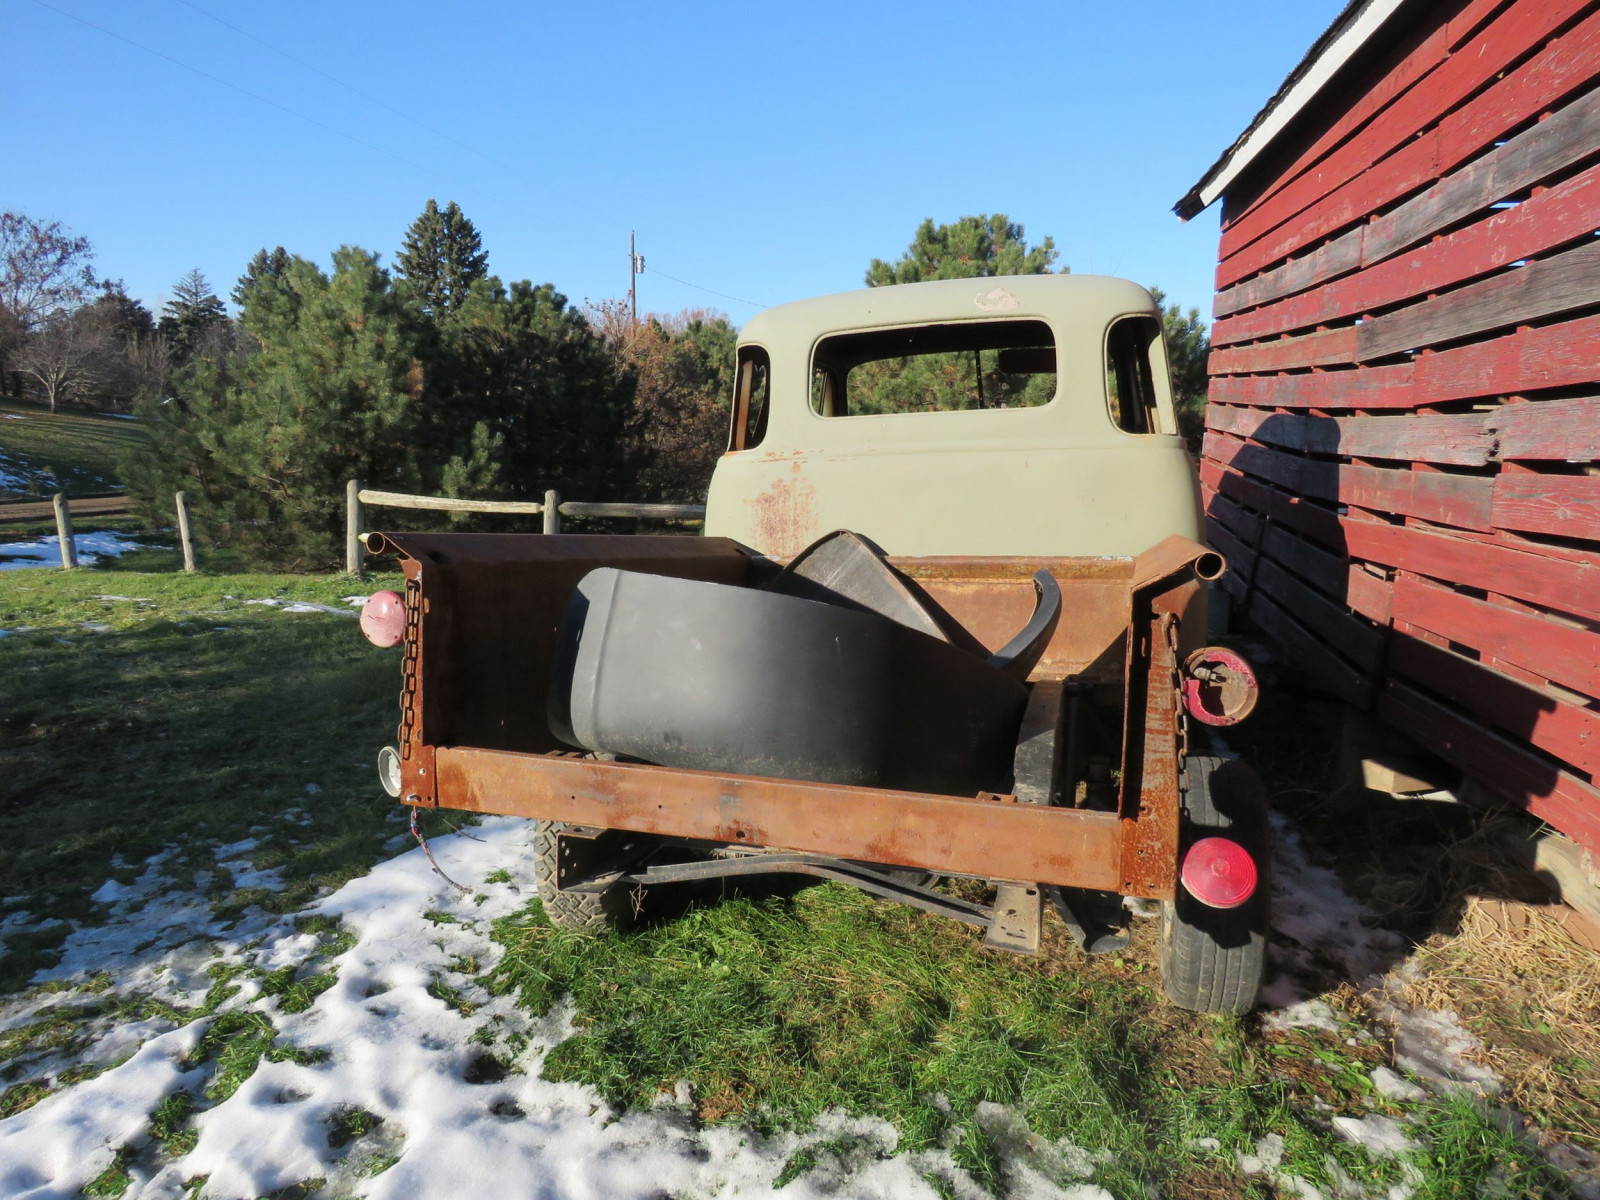 1949 Chevrolet 5 Window Cab Pickup Project - Image 5